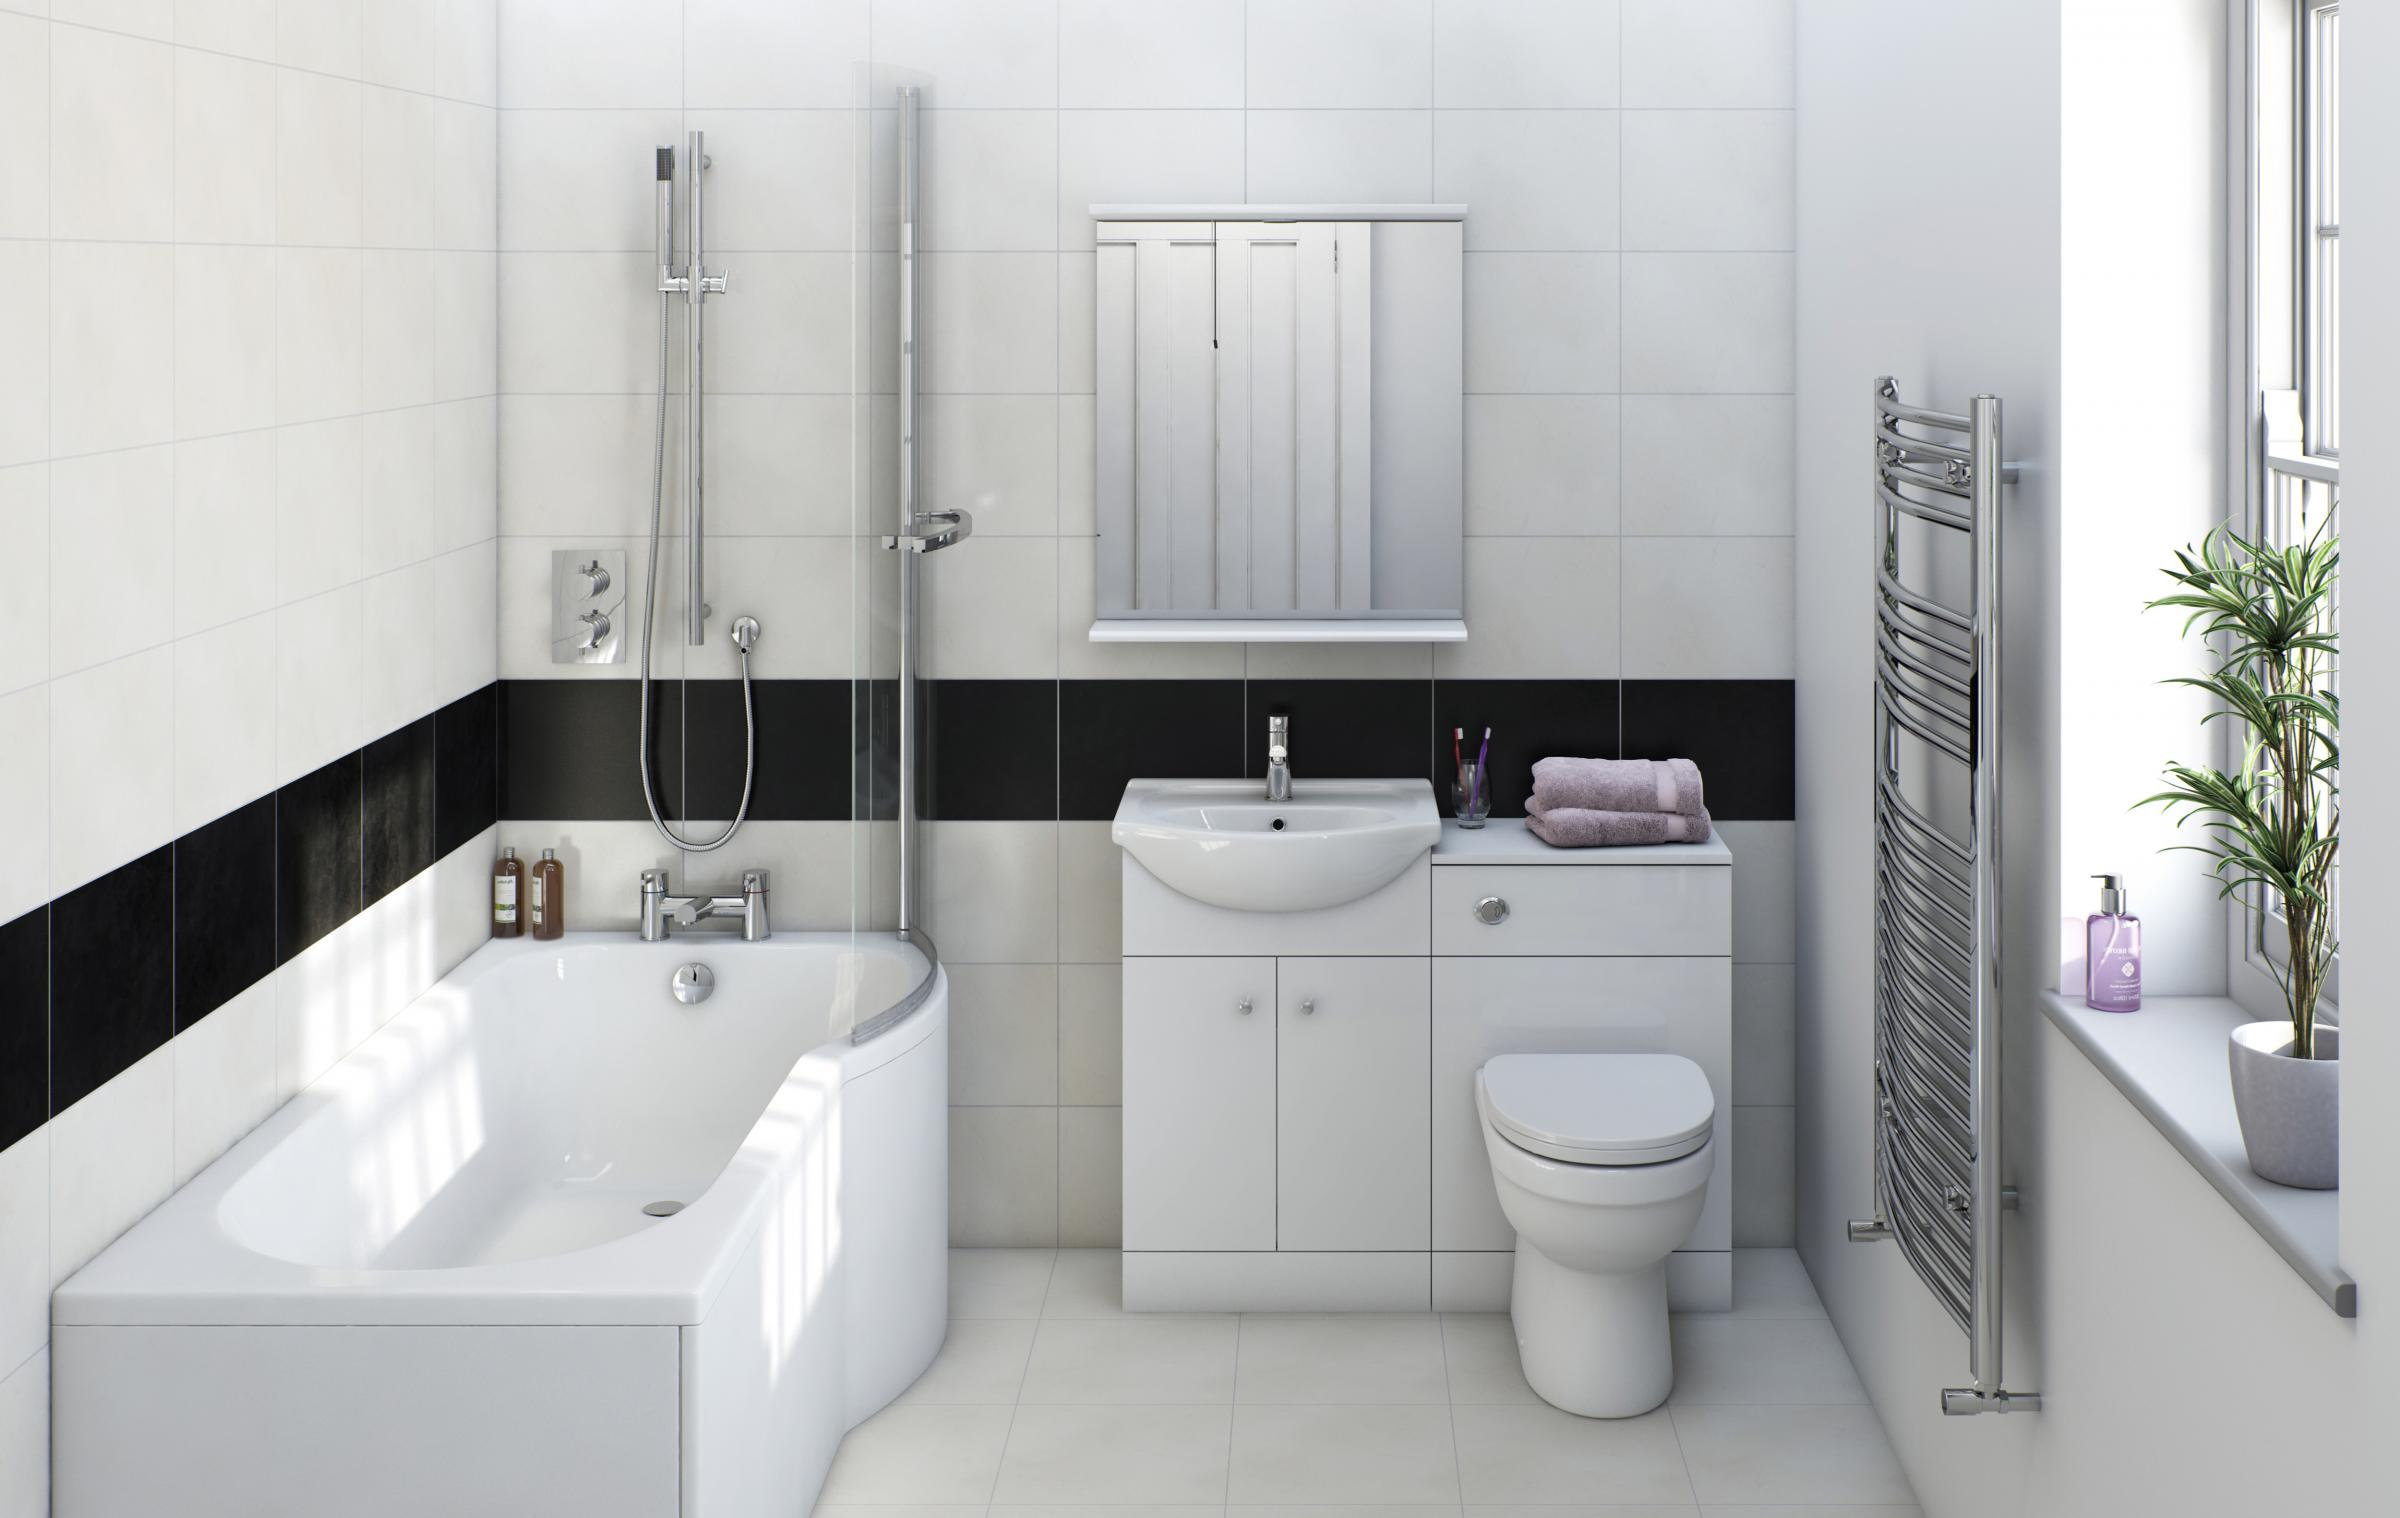 stunning small bathrooms fabulous stunning small spaces bathroom interesting make the most of small bathrooms with simple but stunning designs with stunning small bathrooms